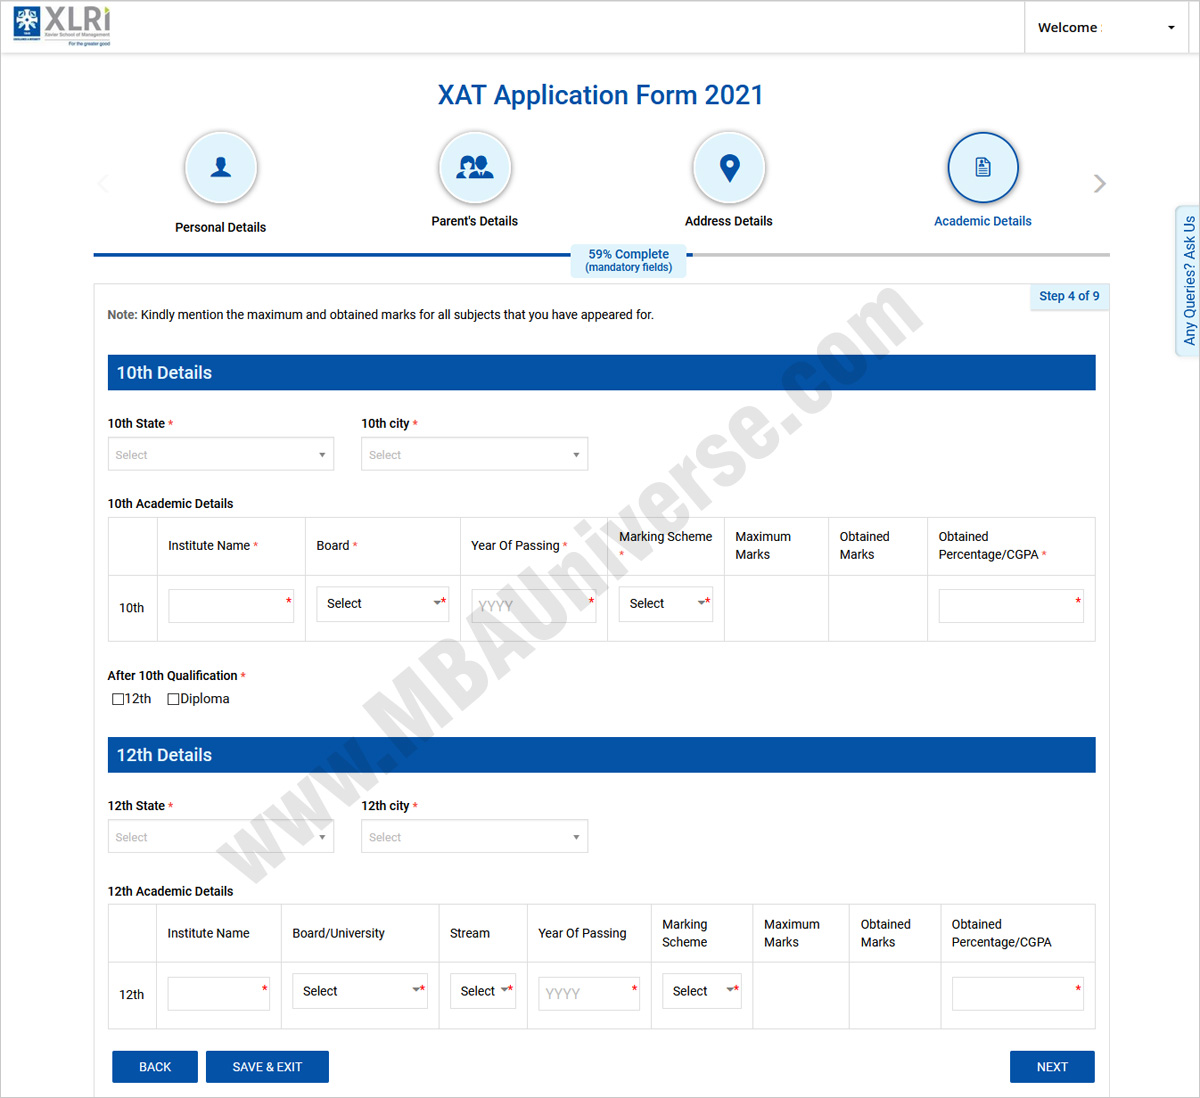 How to apply for XAT and XLRI Steps 5